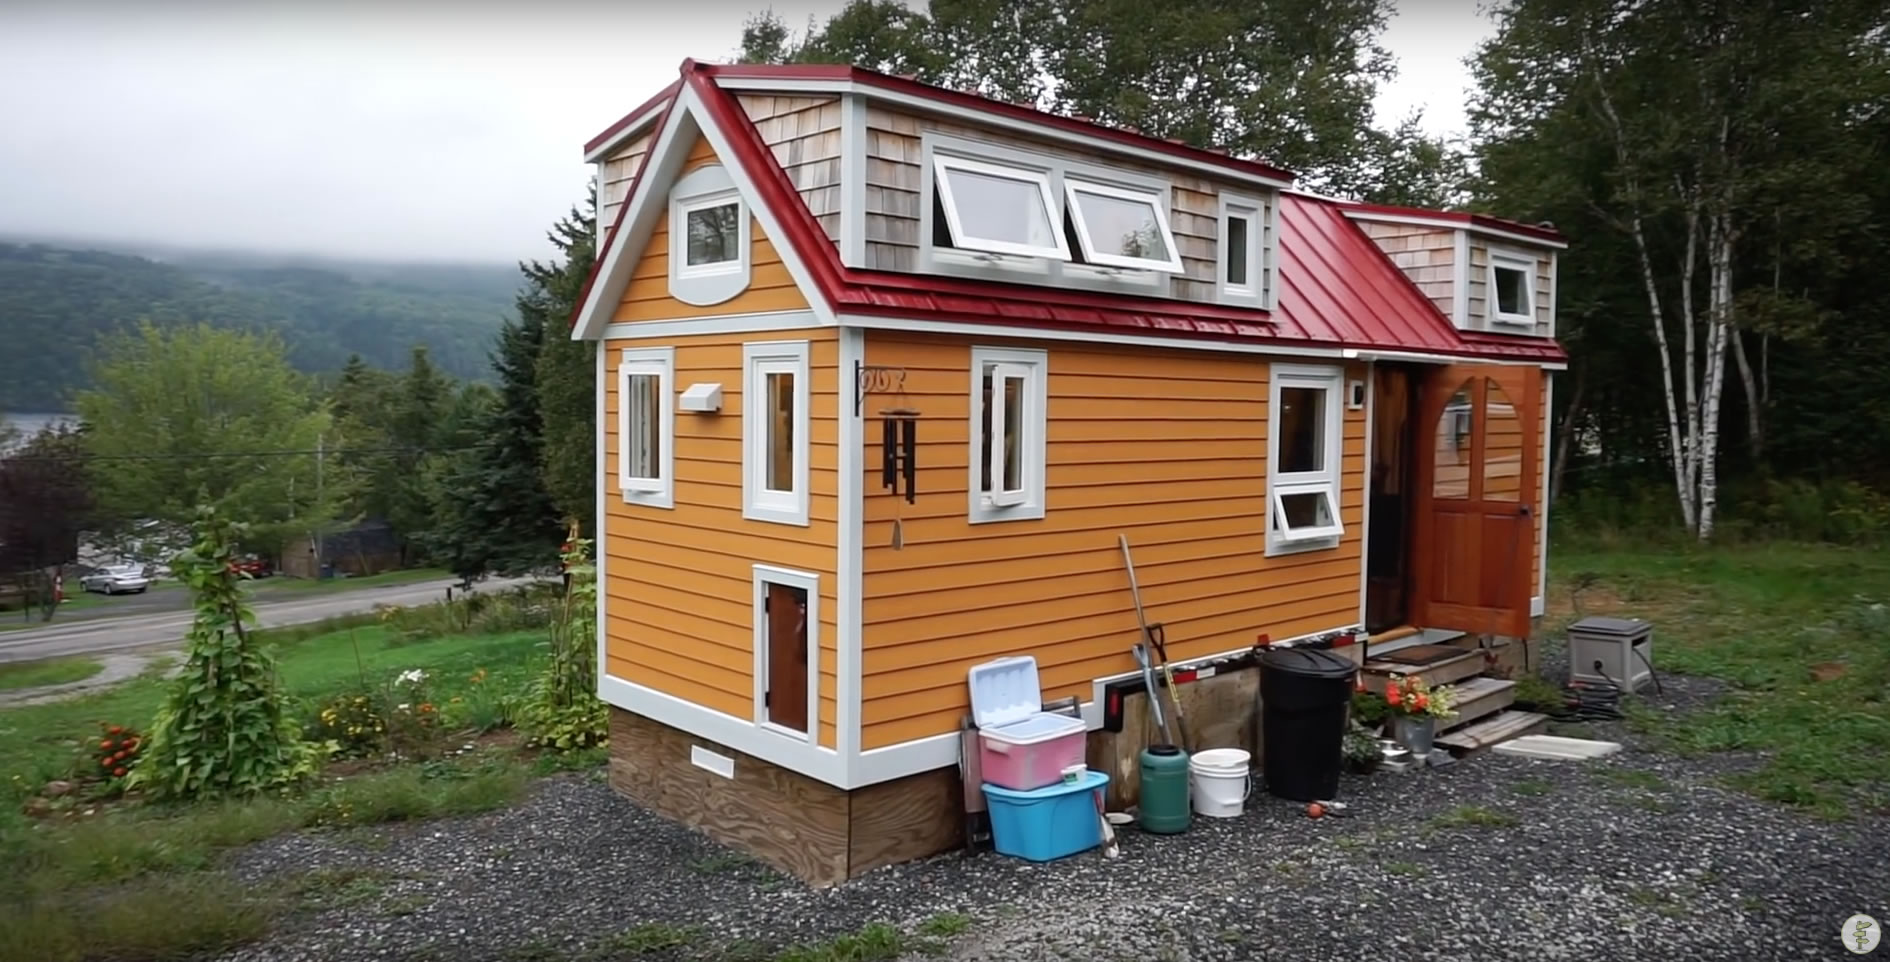 Exterior 3 - Challenges & Benefits of Tiny House Living - Couple Shares Experience